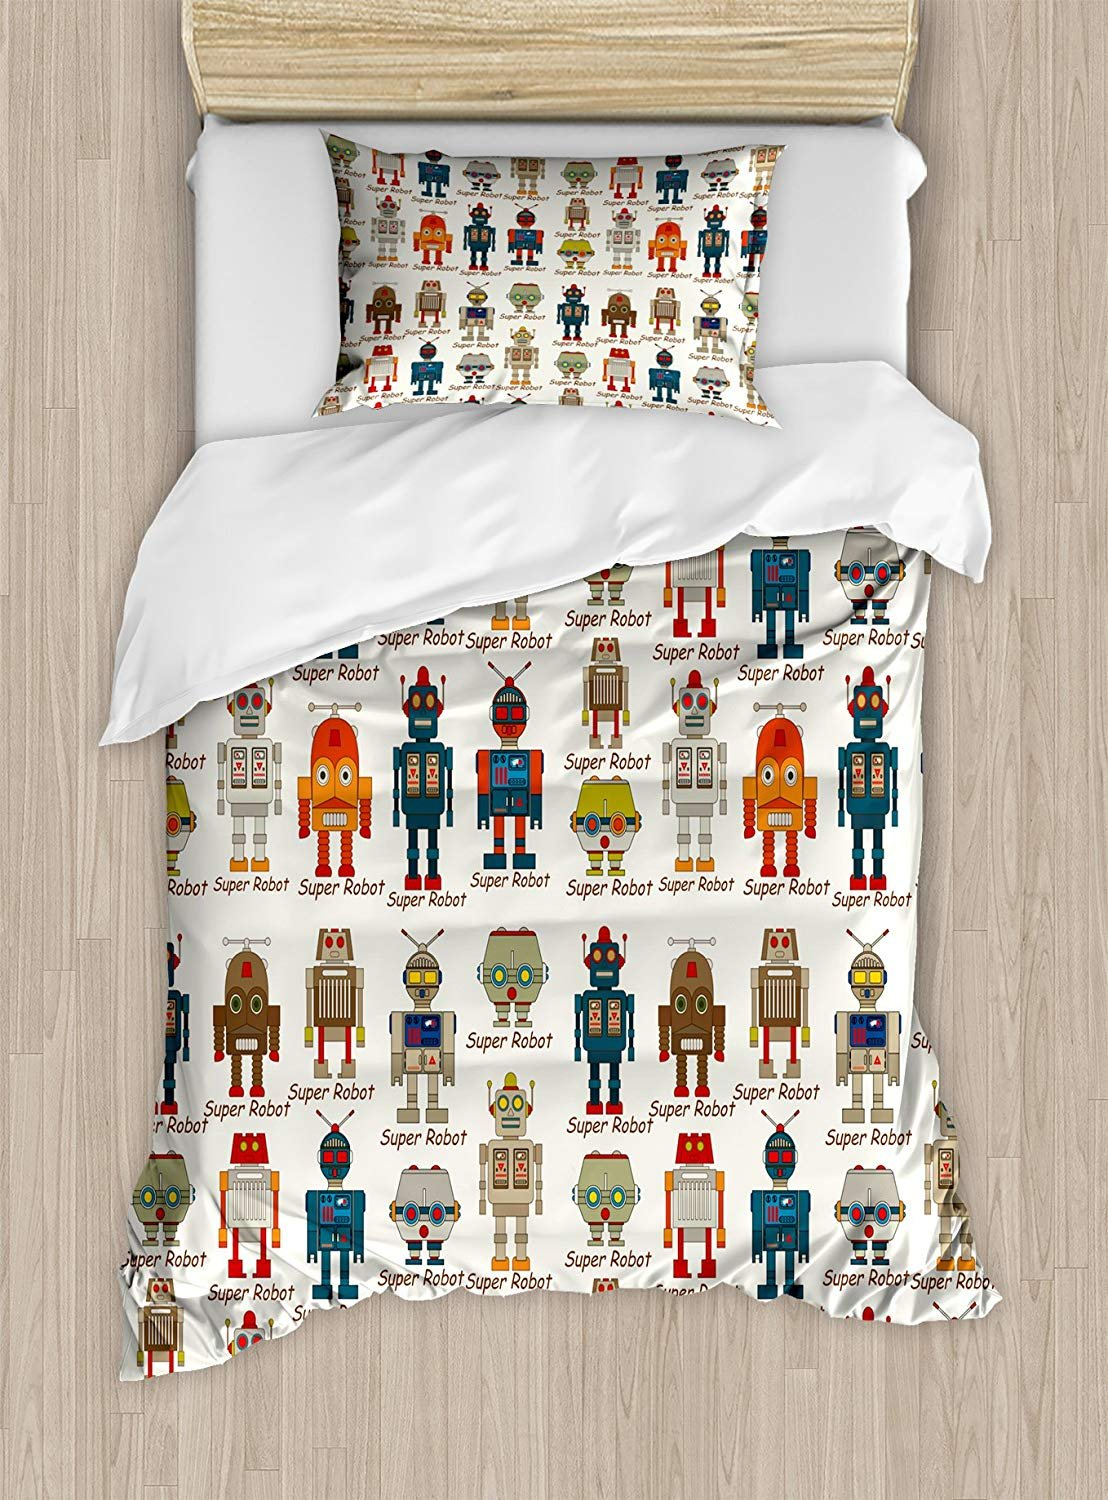 Kids Duvet Cover Set,Various Different Super Robot Figures Set in Cartoon Style Fantasy Futuristic Machine,Cosy House Collection 4 Piece Bedding Sets